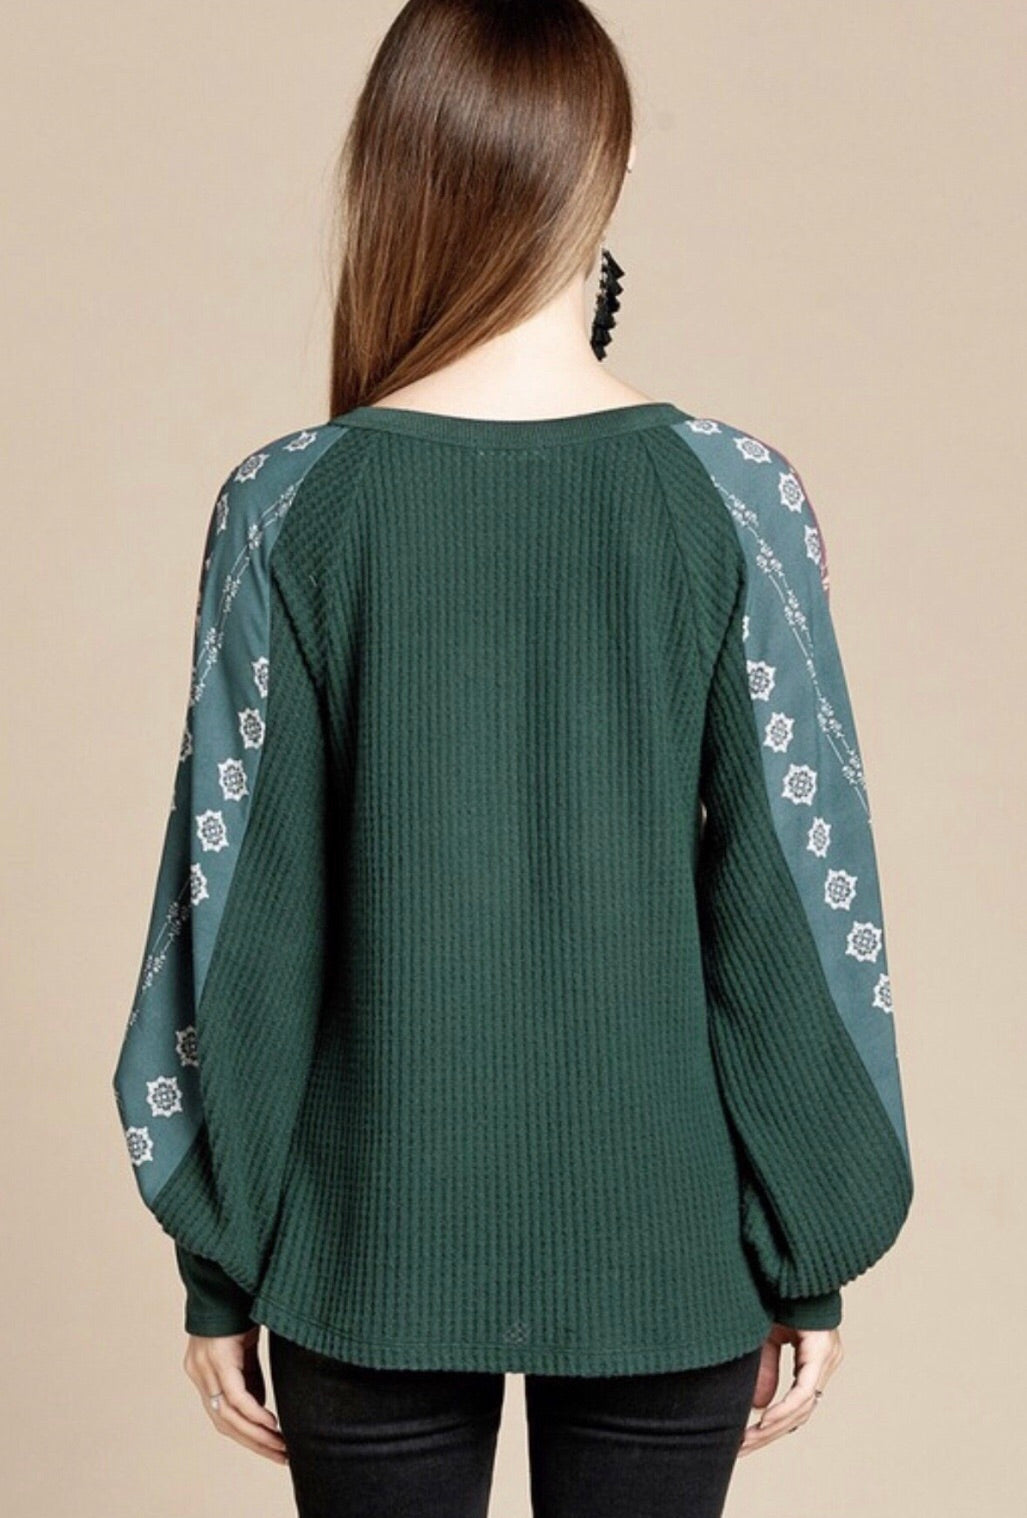 Hunter Green Waffleknit Printed Sleeved Top